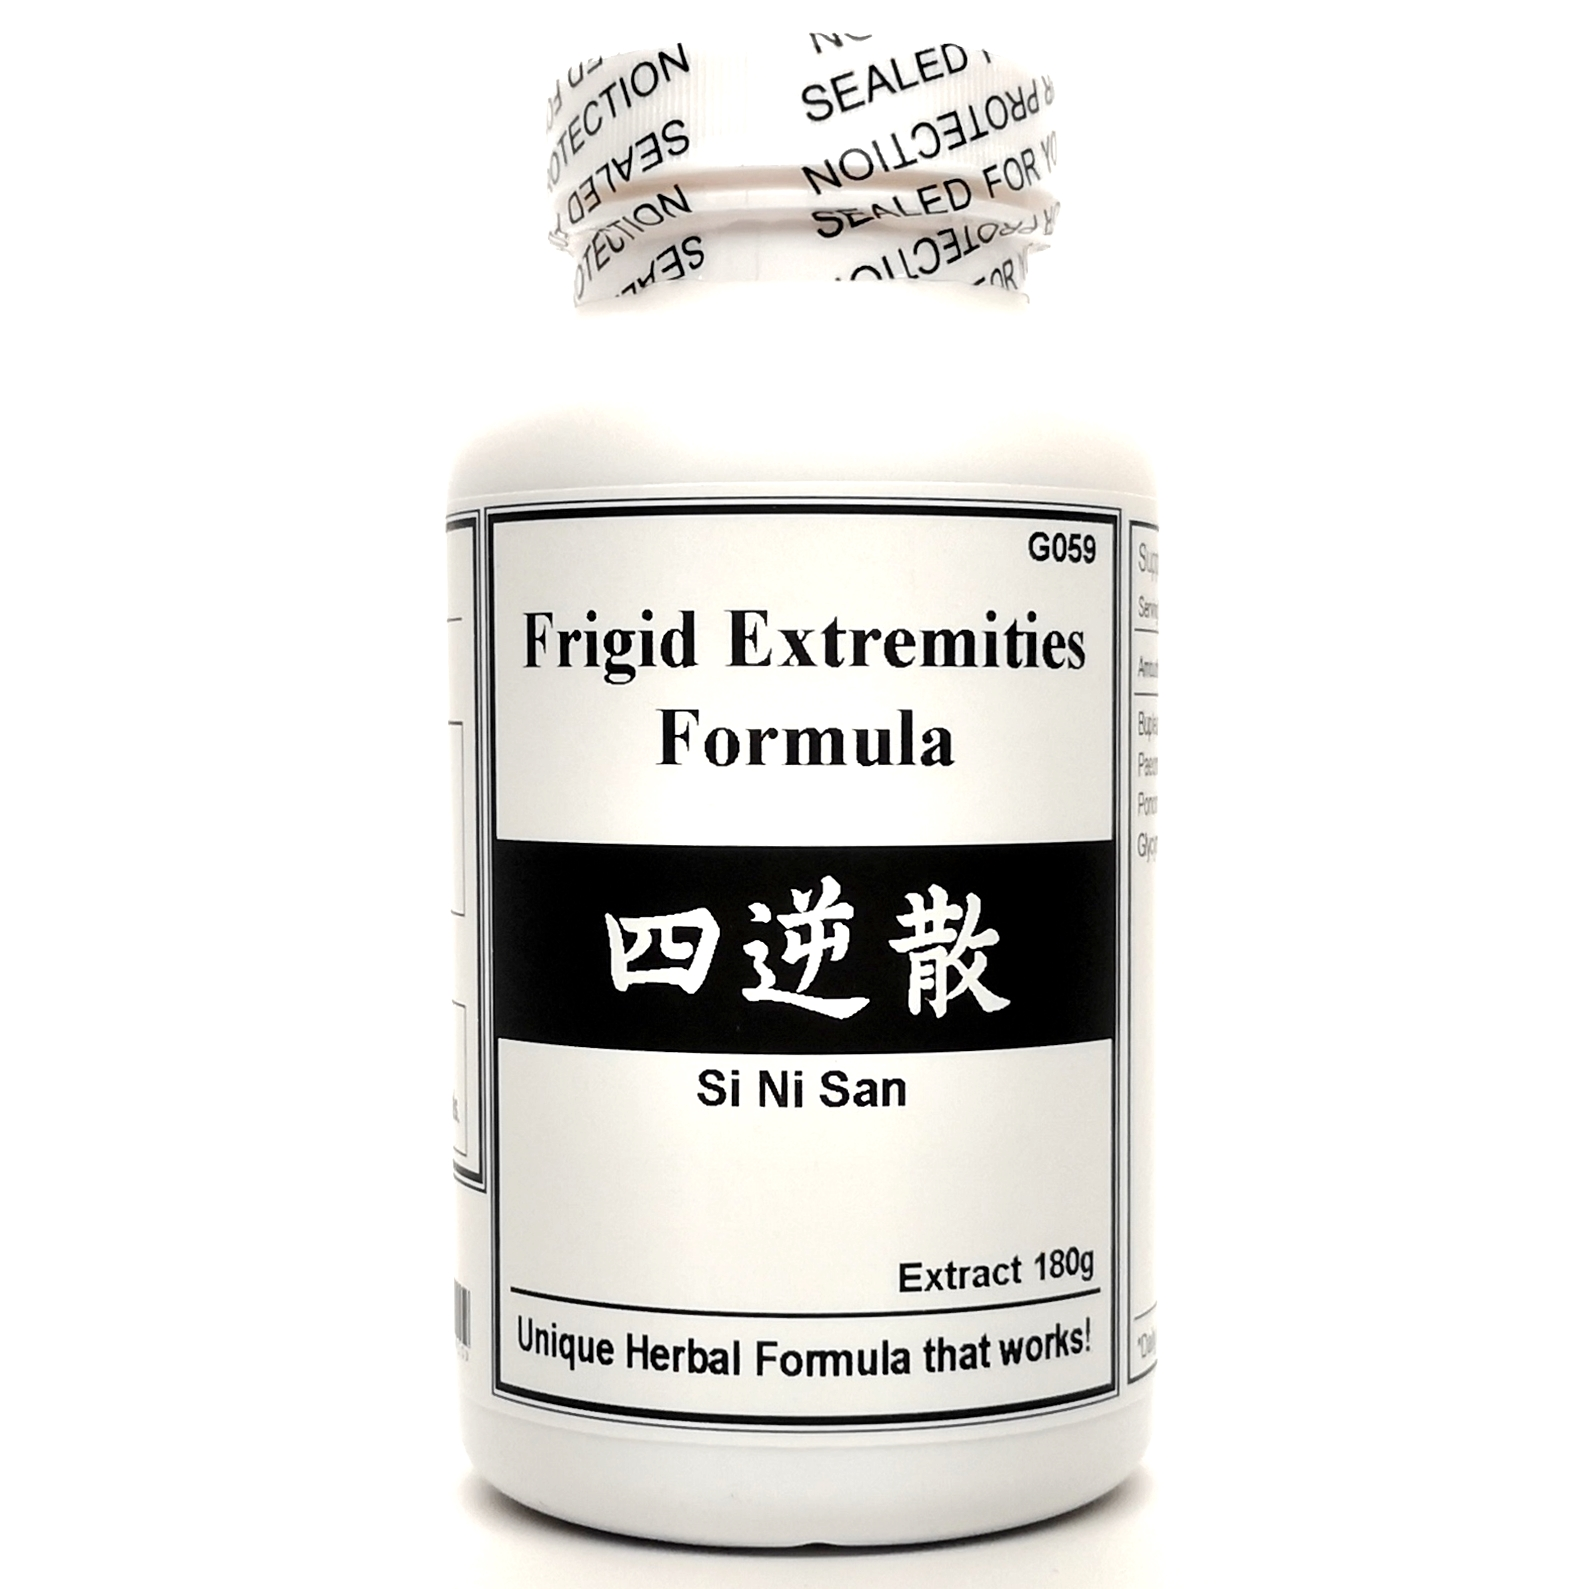 Frigid Extremities Formula Extract Powder Instant Herbal Tea 180g  (Si Ni San)